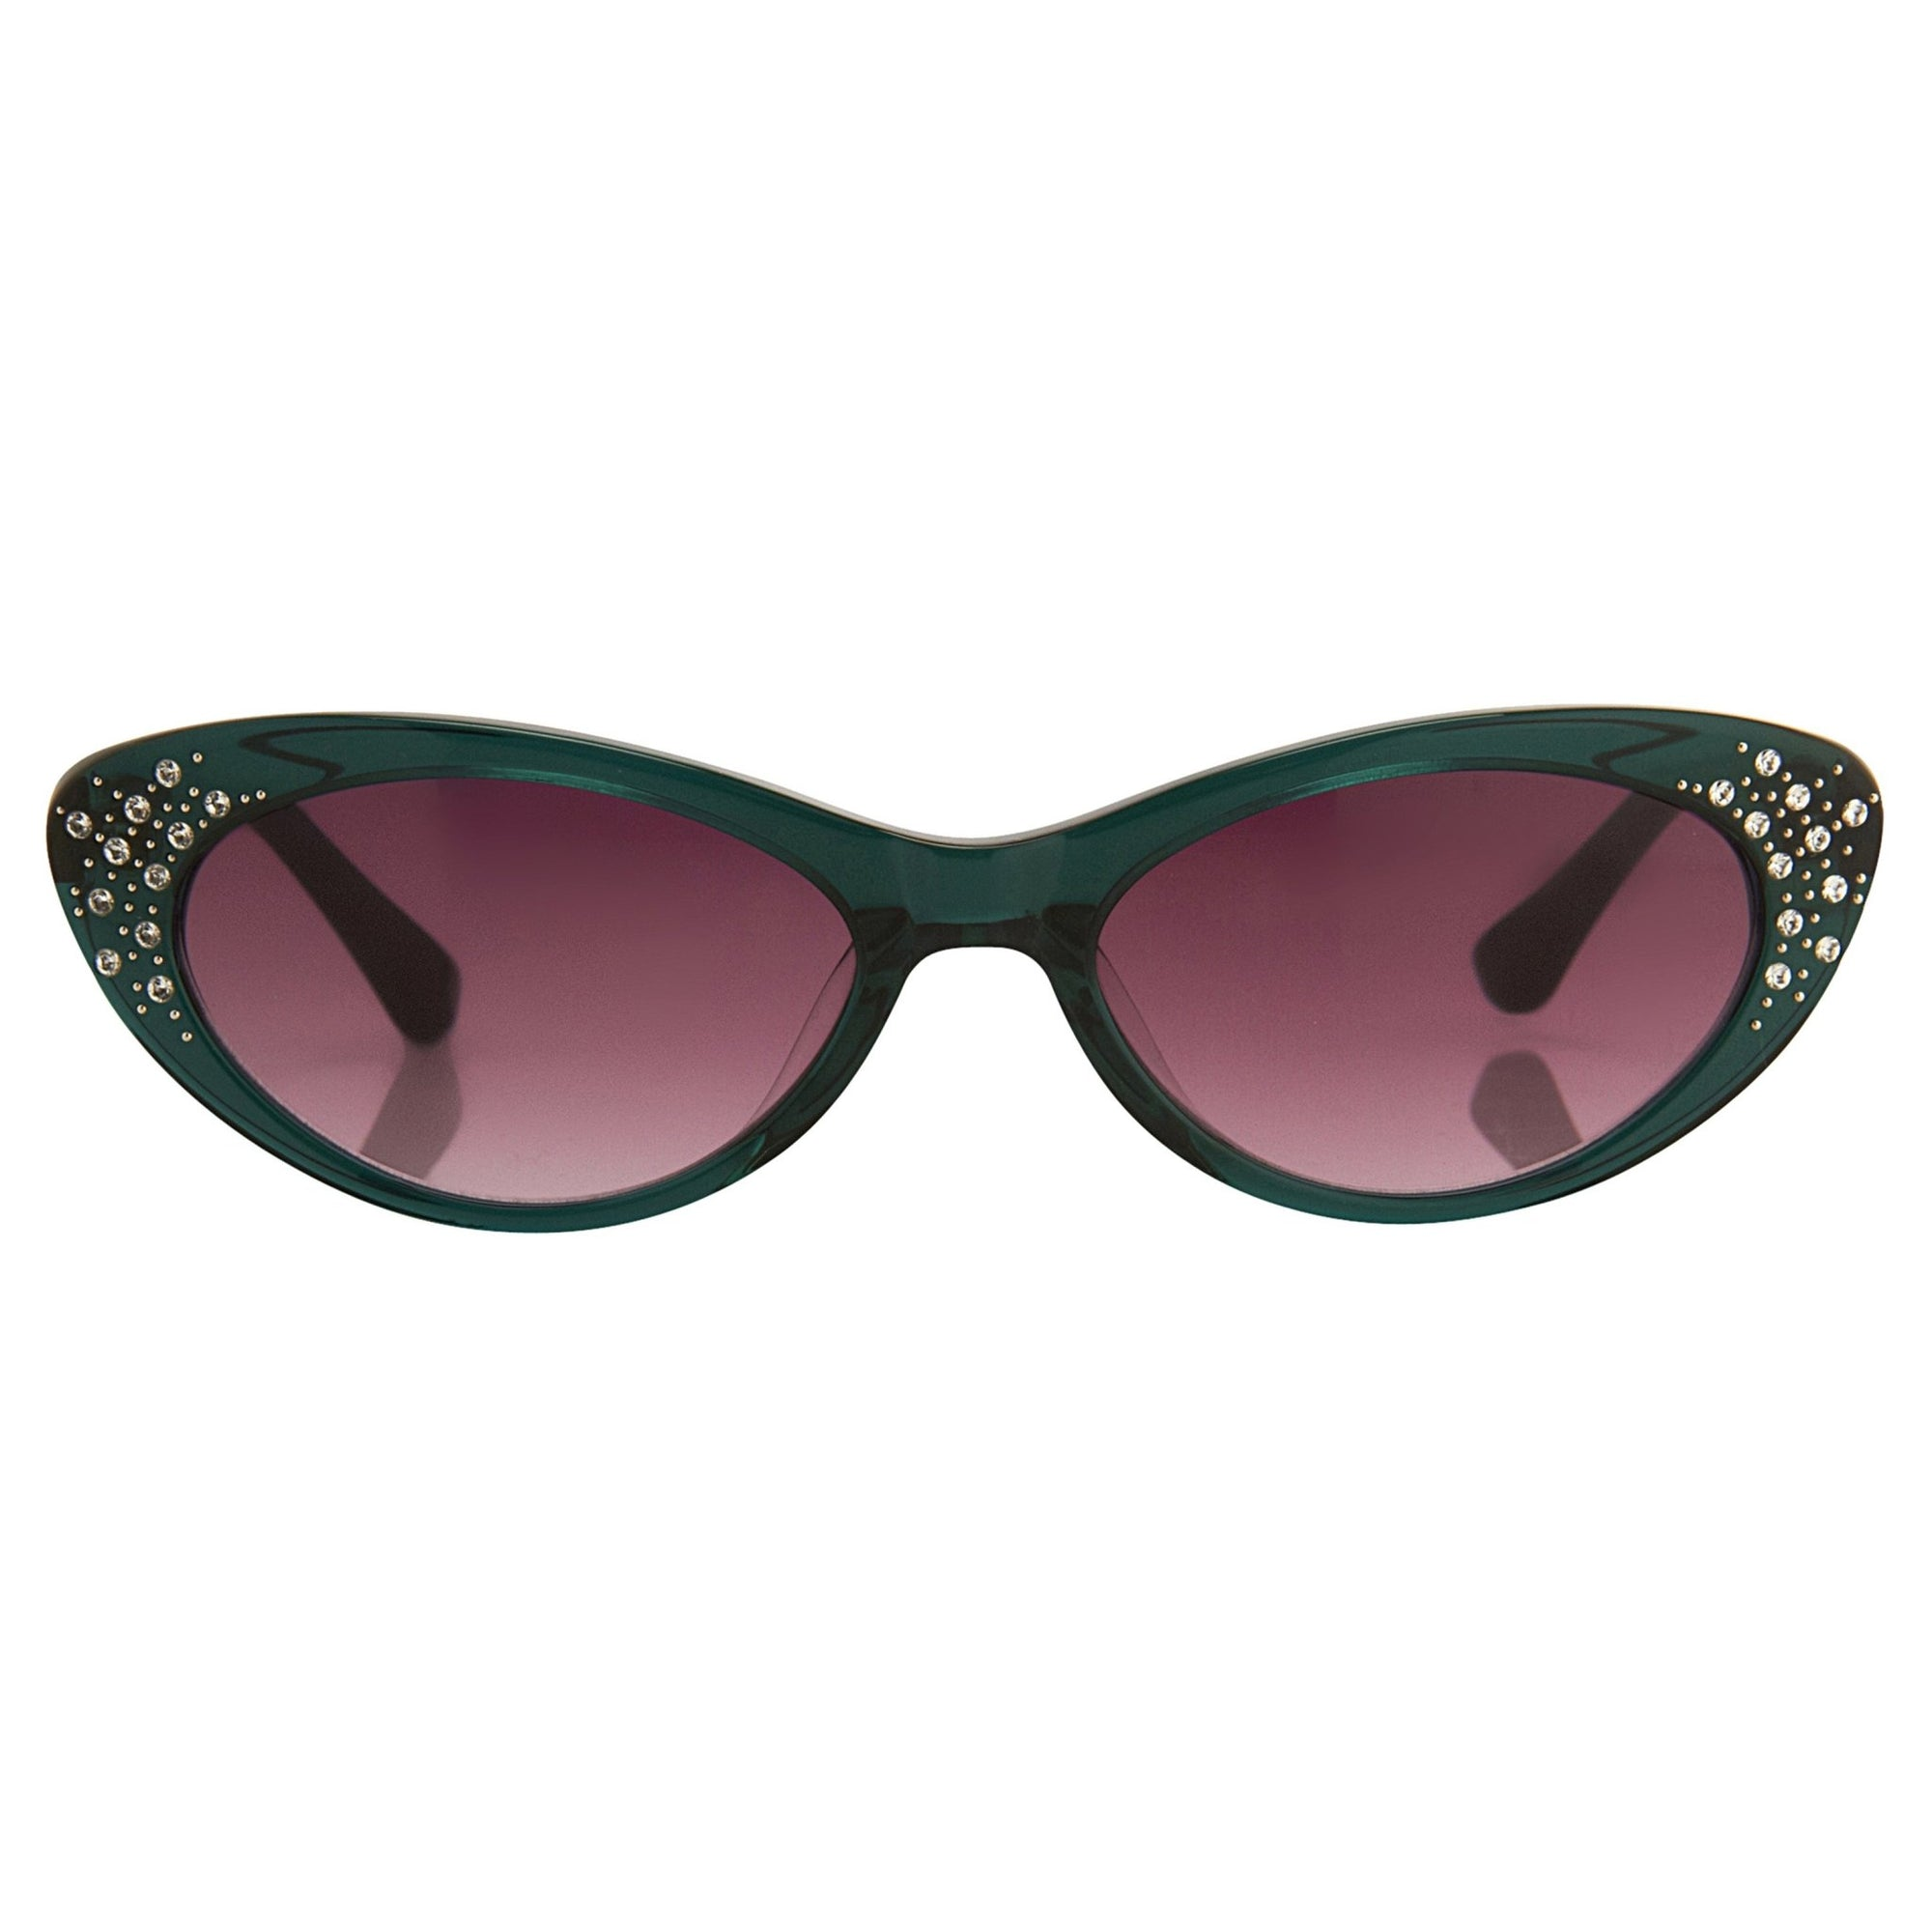 Agent Provocateur Sunglasses Cat Eye Green and Burgundy